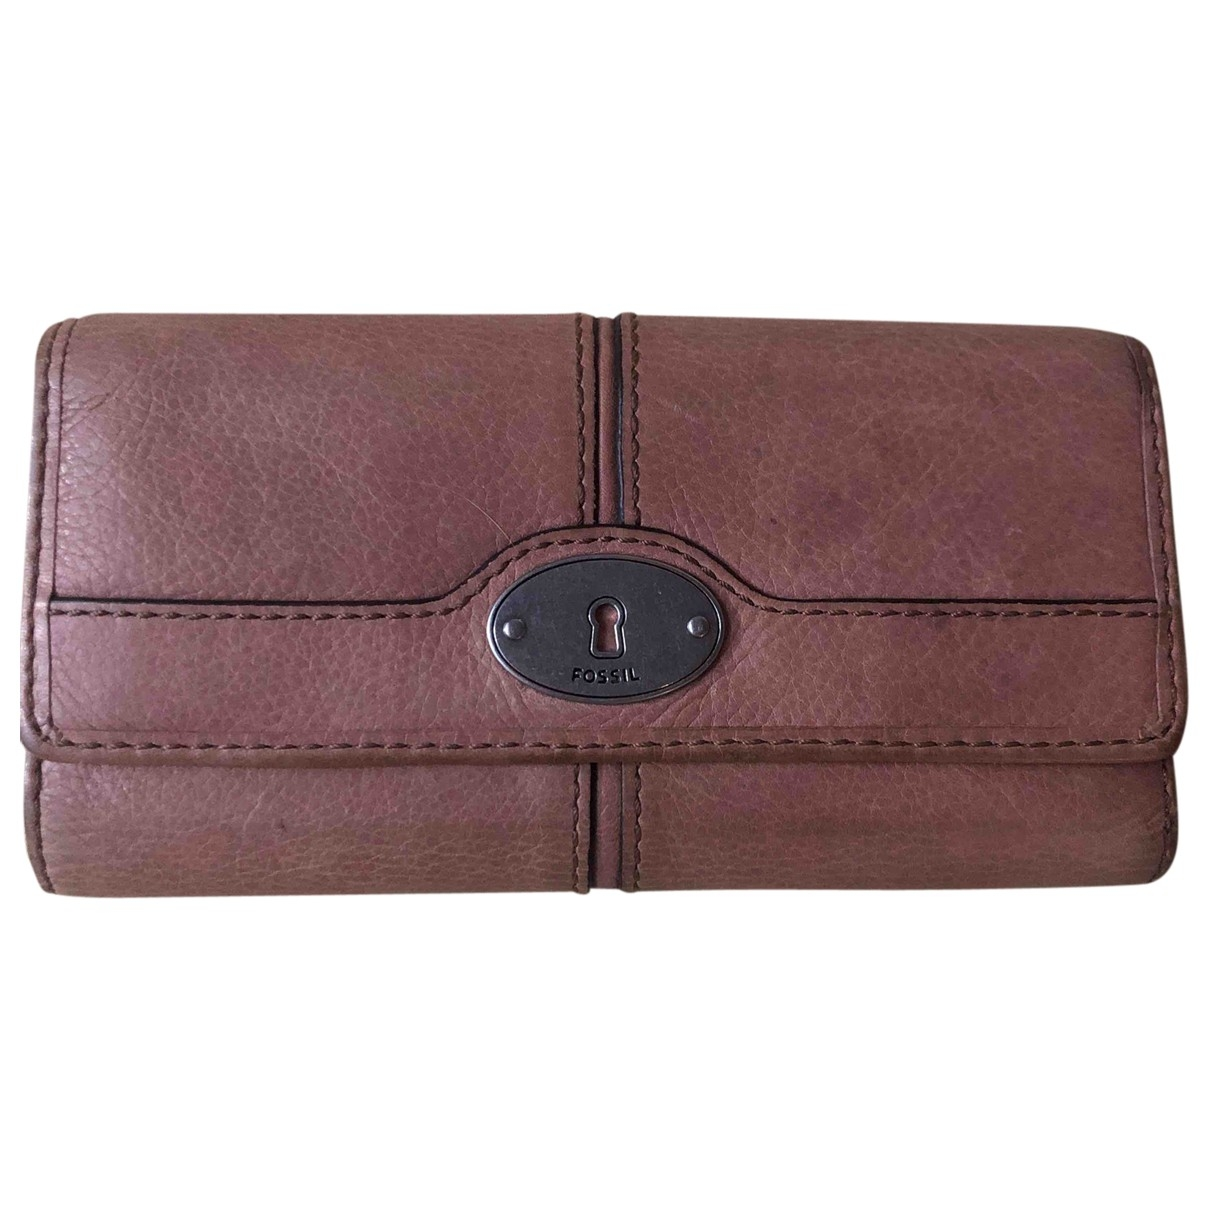 Fossil \N Brown Leather wallet for Women \N